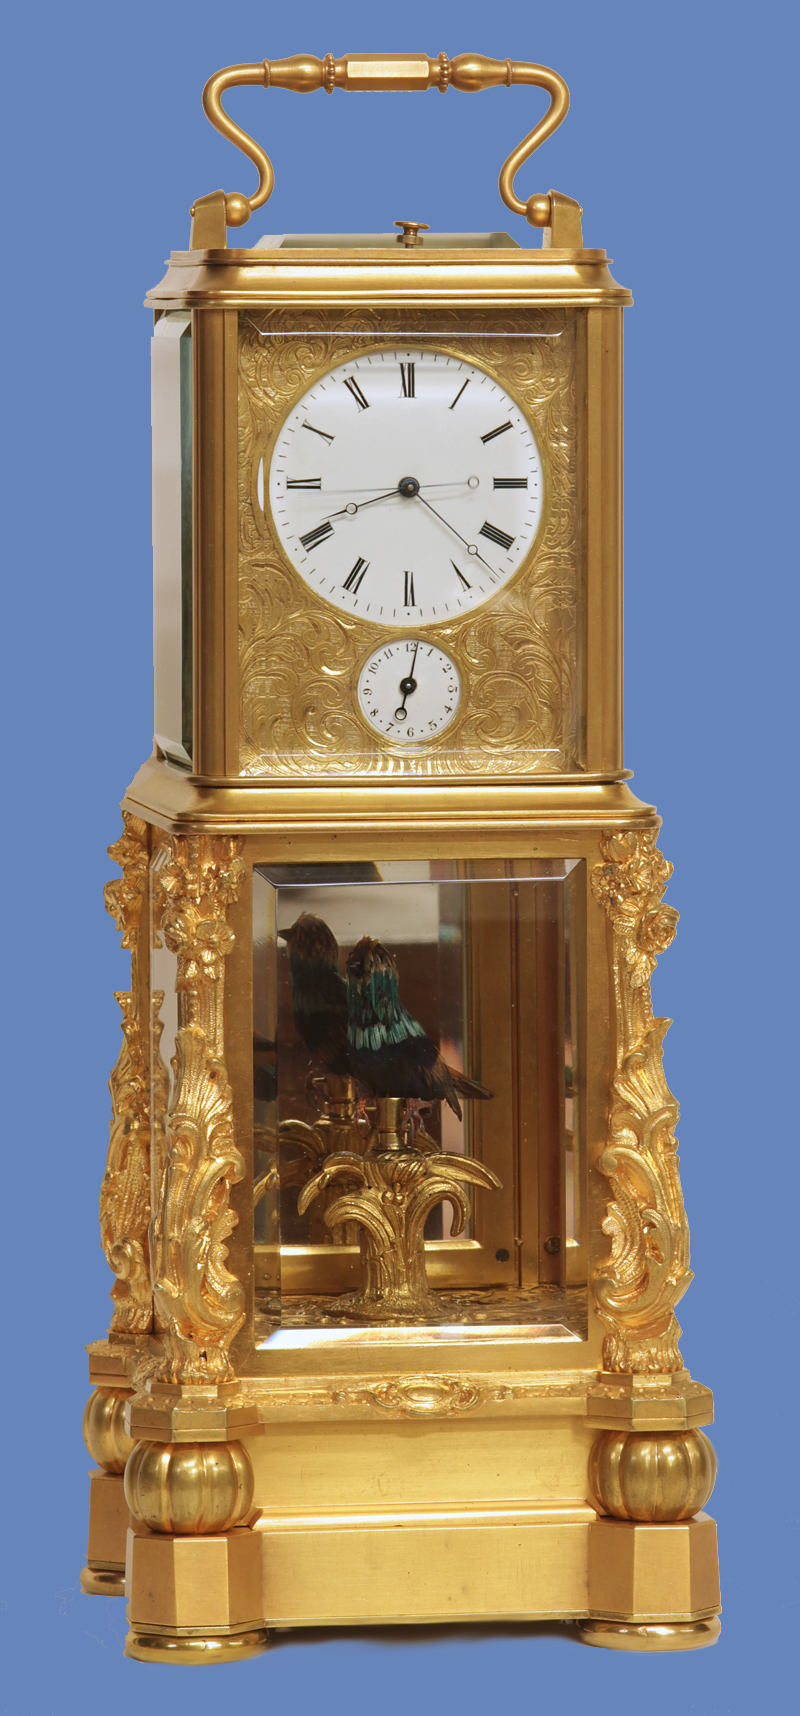 c. 1870 Rare French Automated Singing Bird Carriage Clock